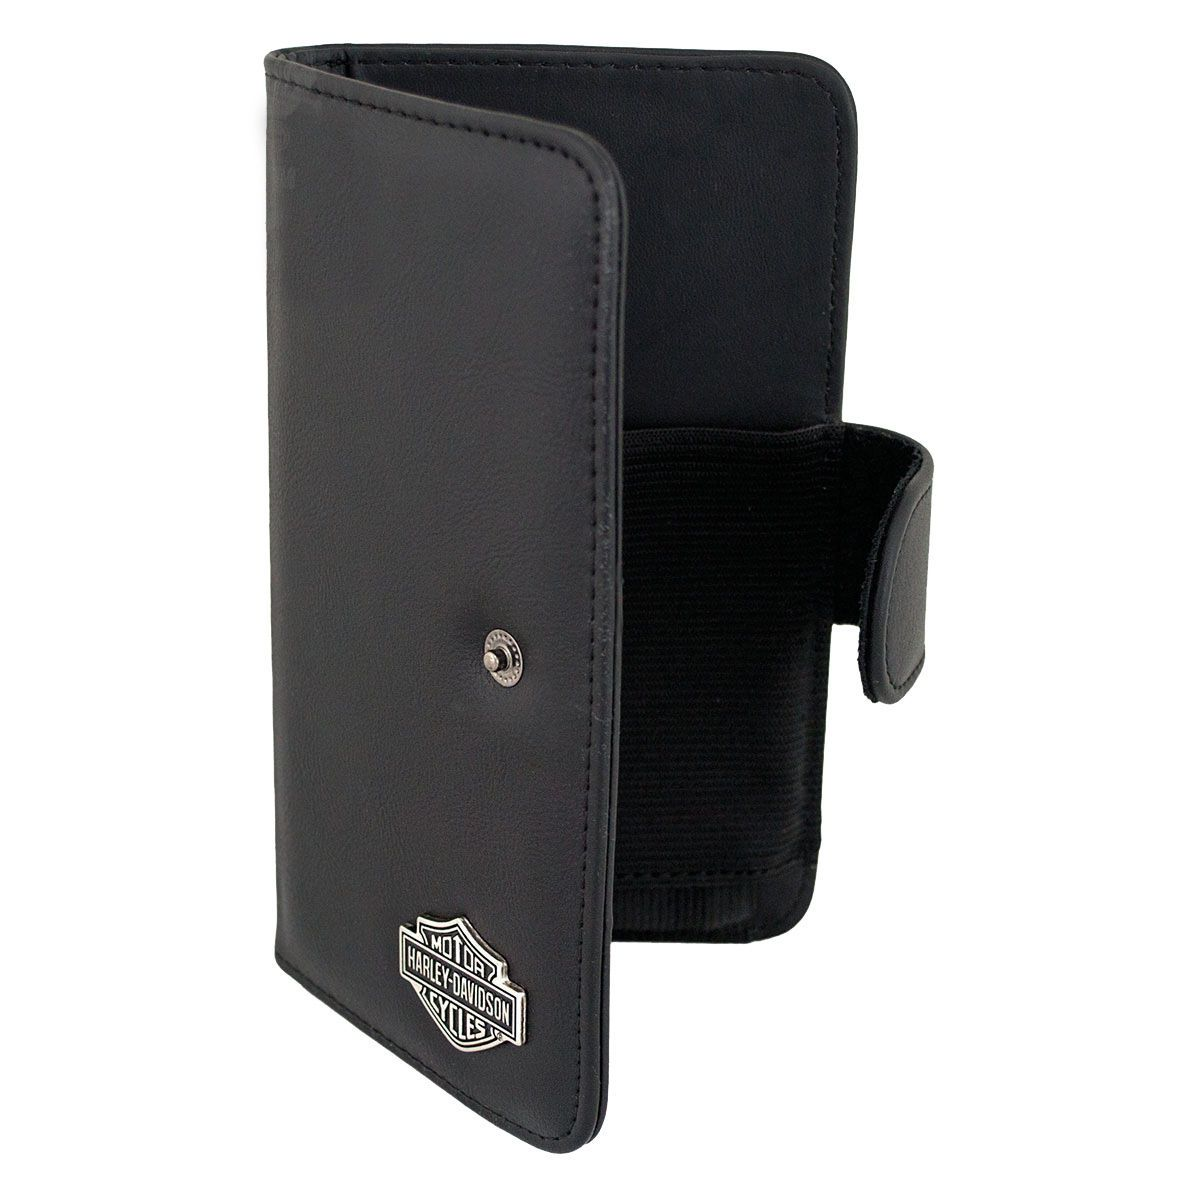 new style 82f38 f6bf7 Harley Davidson Card Holder Wallet Case fits LG K20 and K20 Plus with a  slim cover on it.